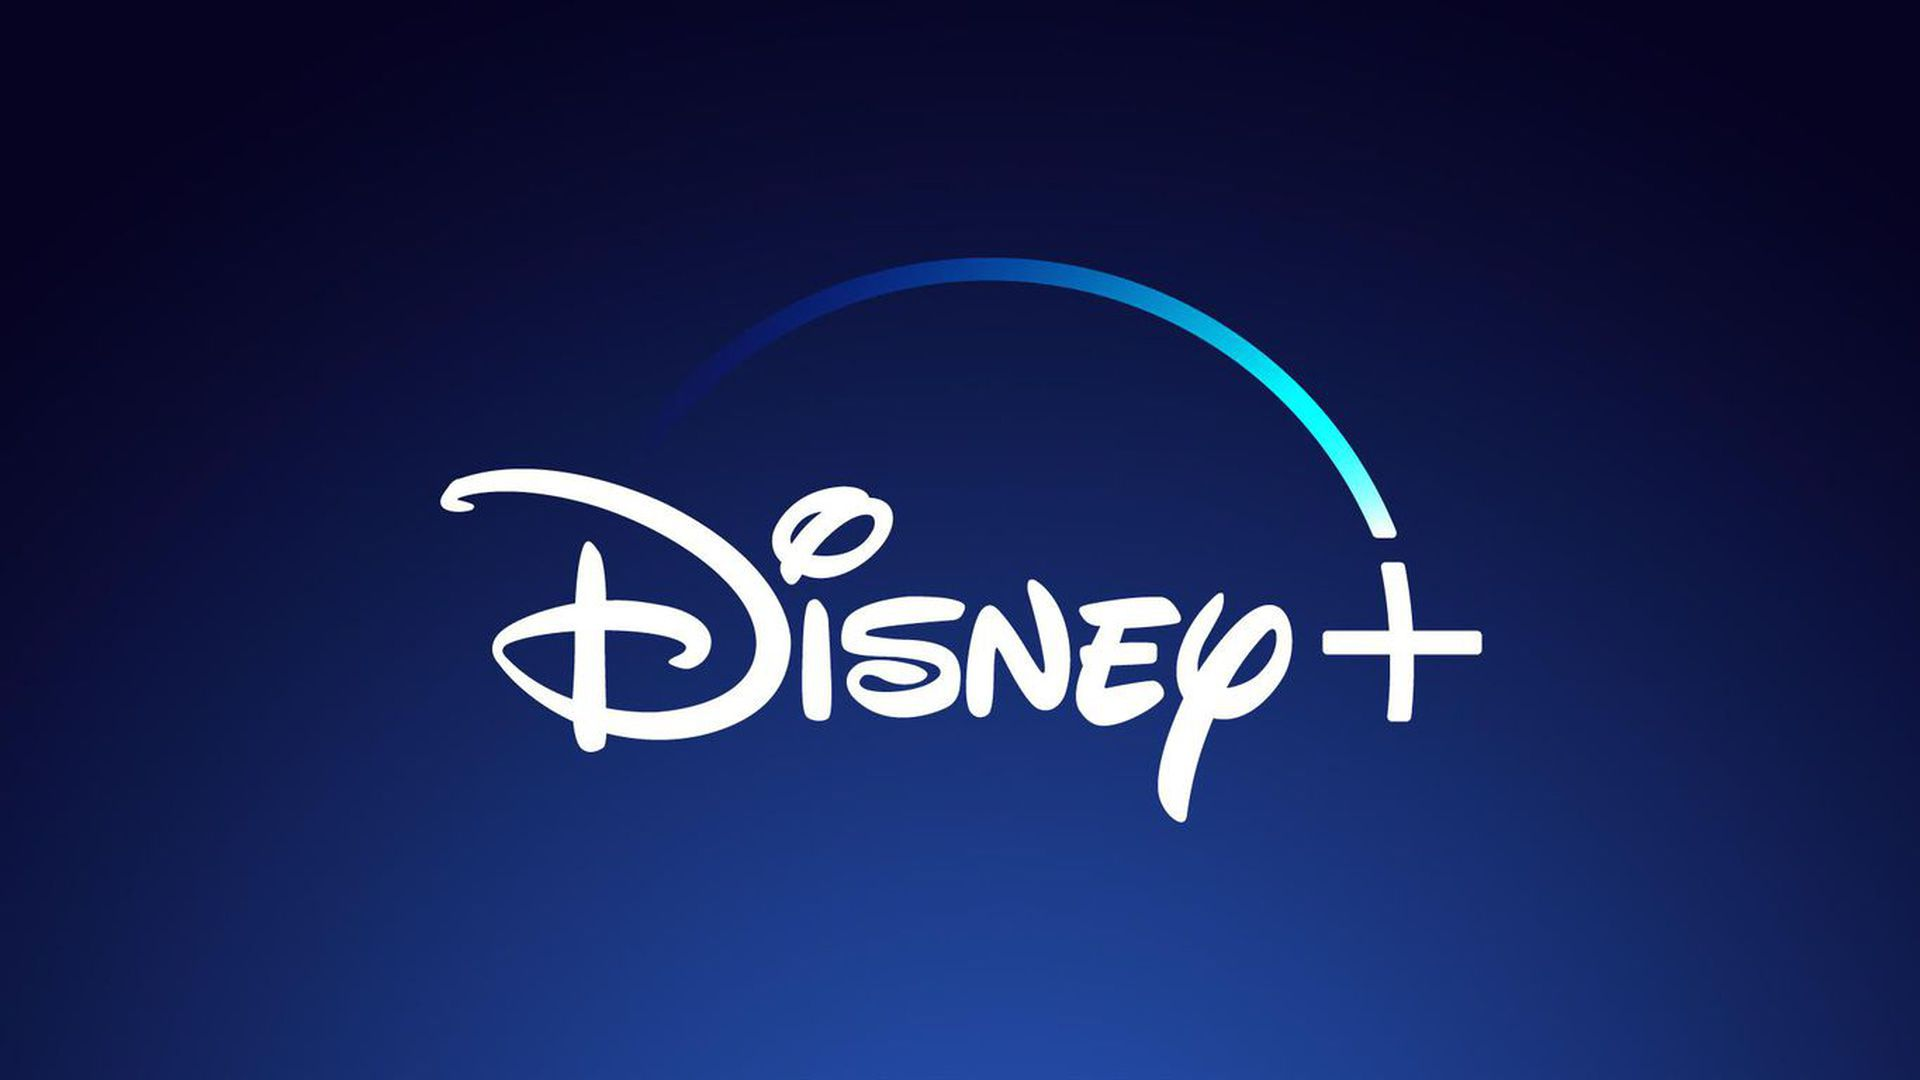 More than 10 million people sign up for Disney+ in first day